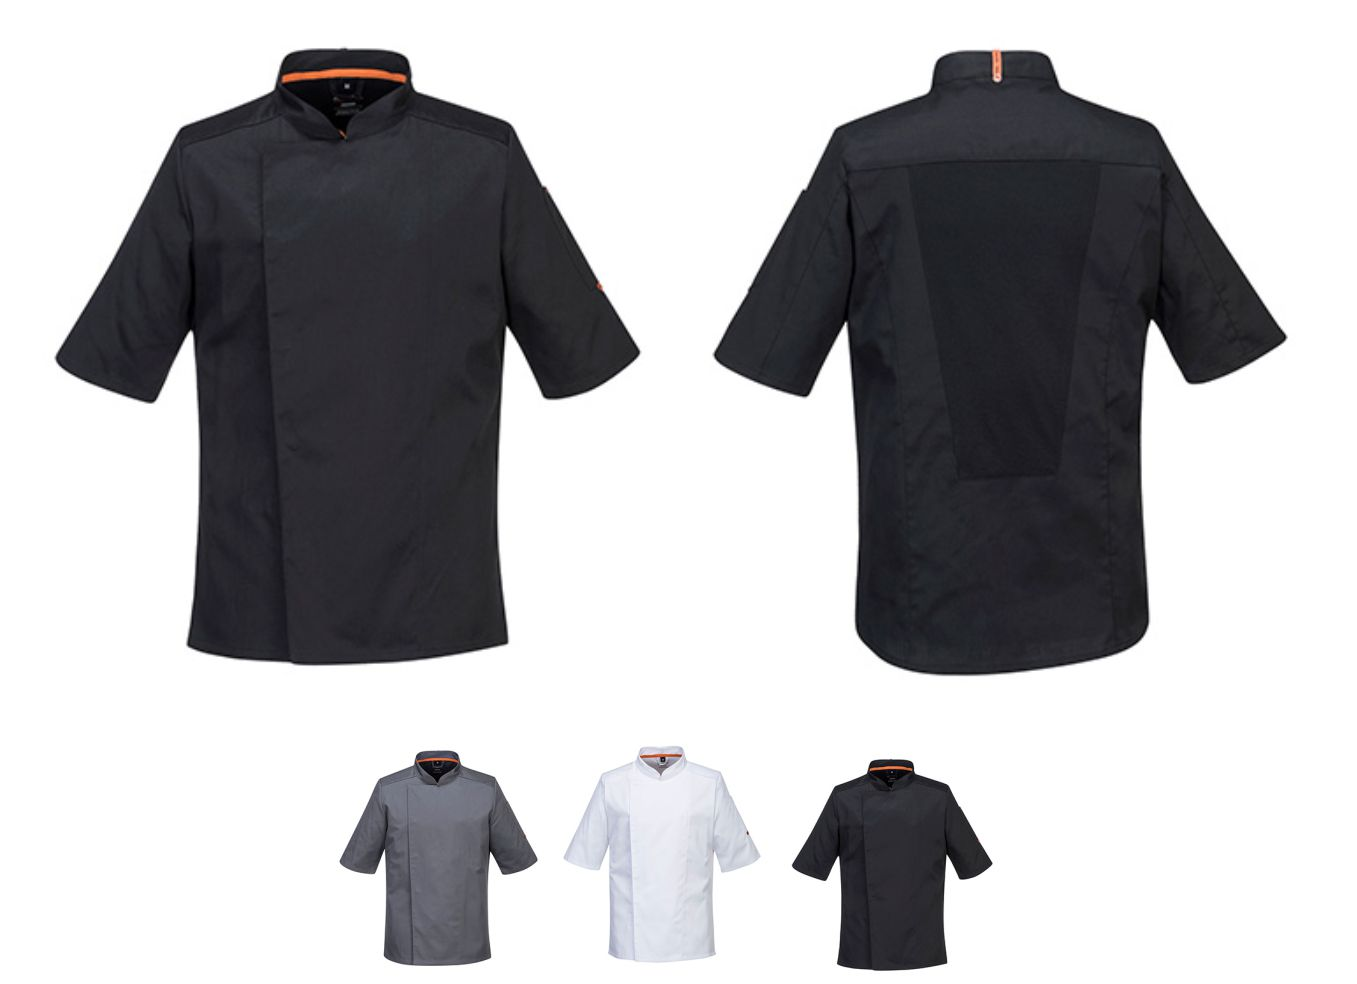 C738 Portwest MeshAir Short Sleeve Pro Jacket